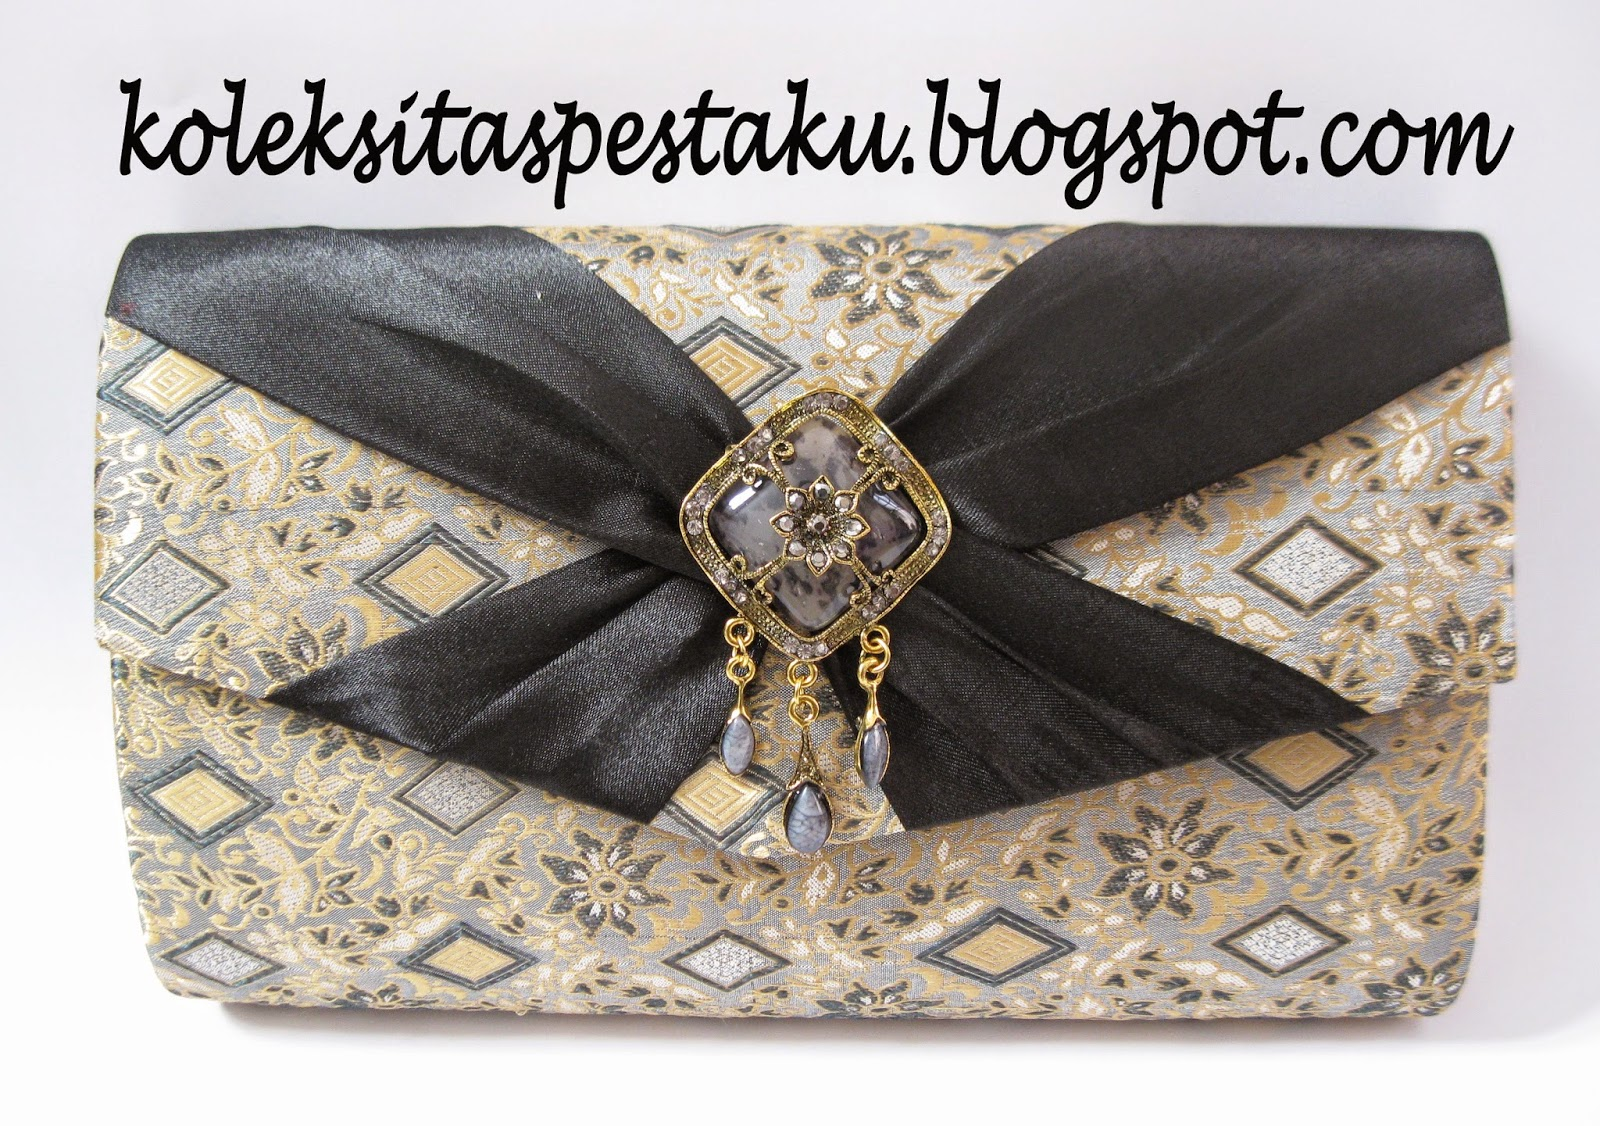 Tas Pesta Sari India Cantik. TAS PESTA - CLUTCH BAG KODE G7 JUMBO. SARI  INDIA HITAM BROSS KONCIR 3c100fd229